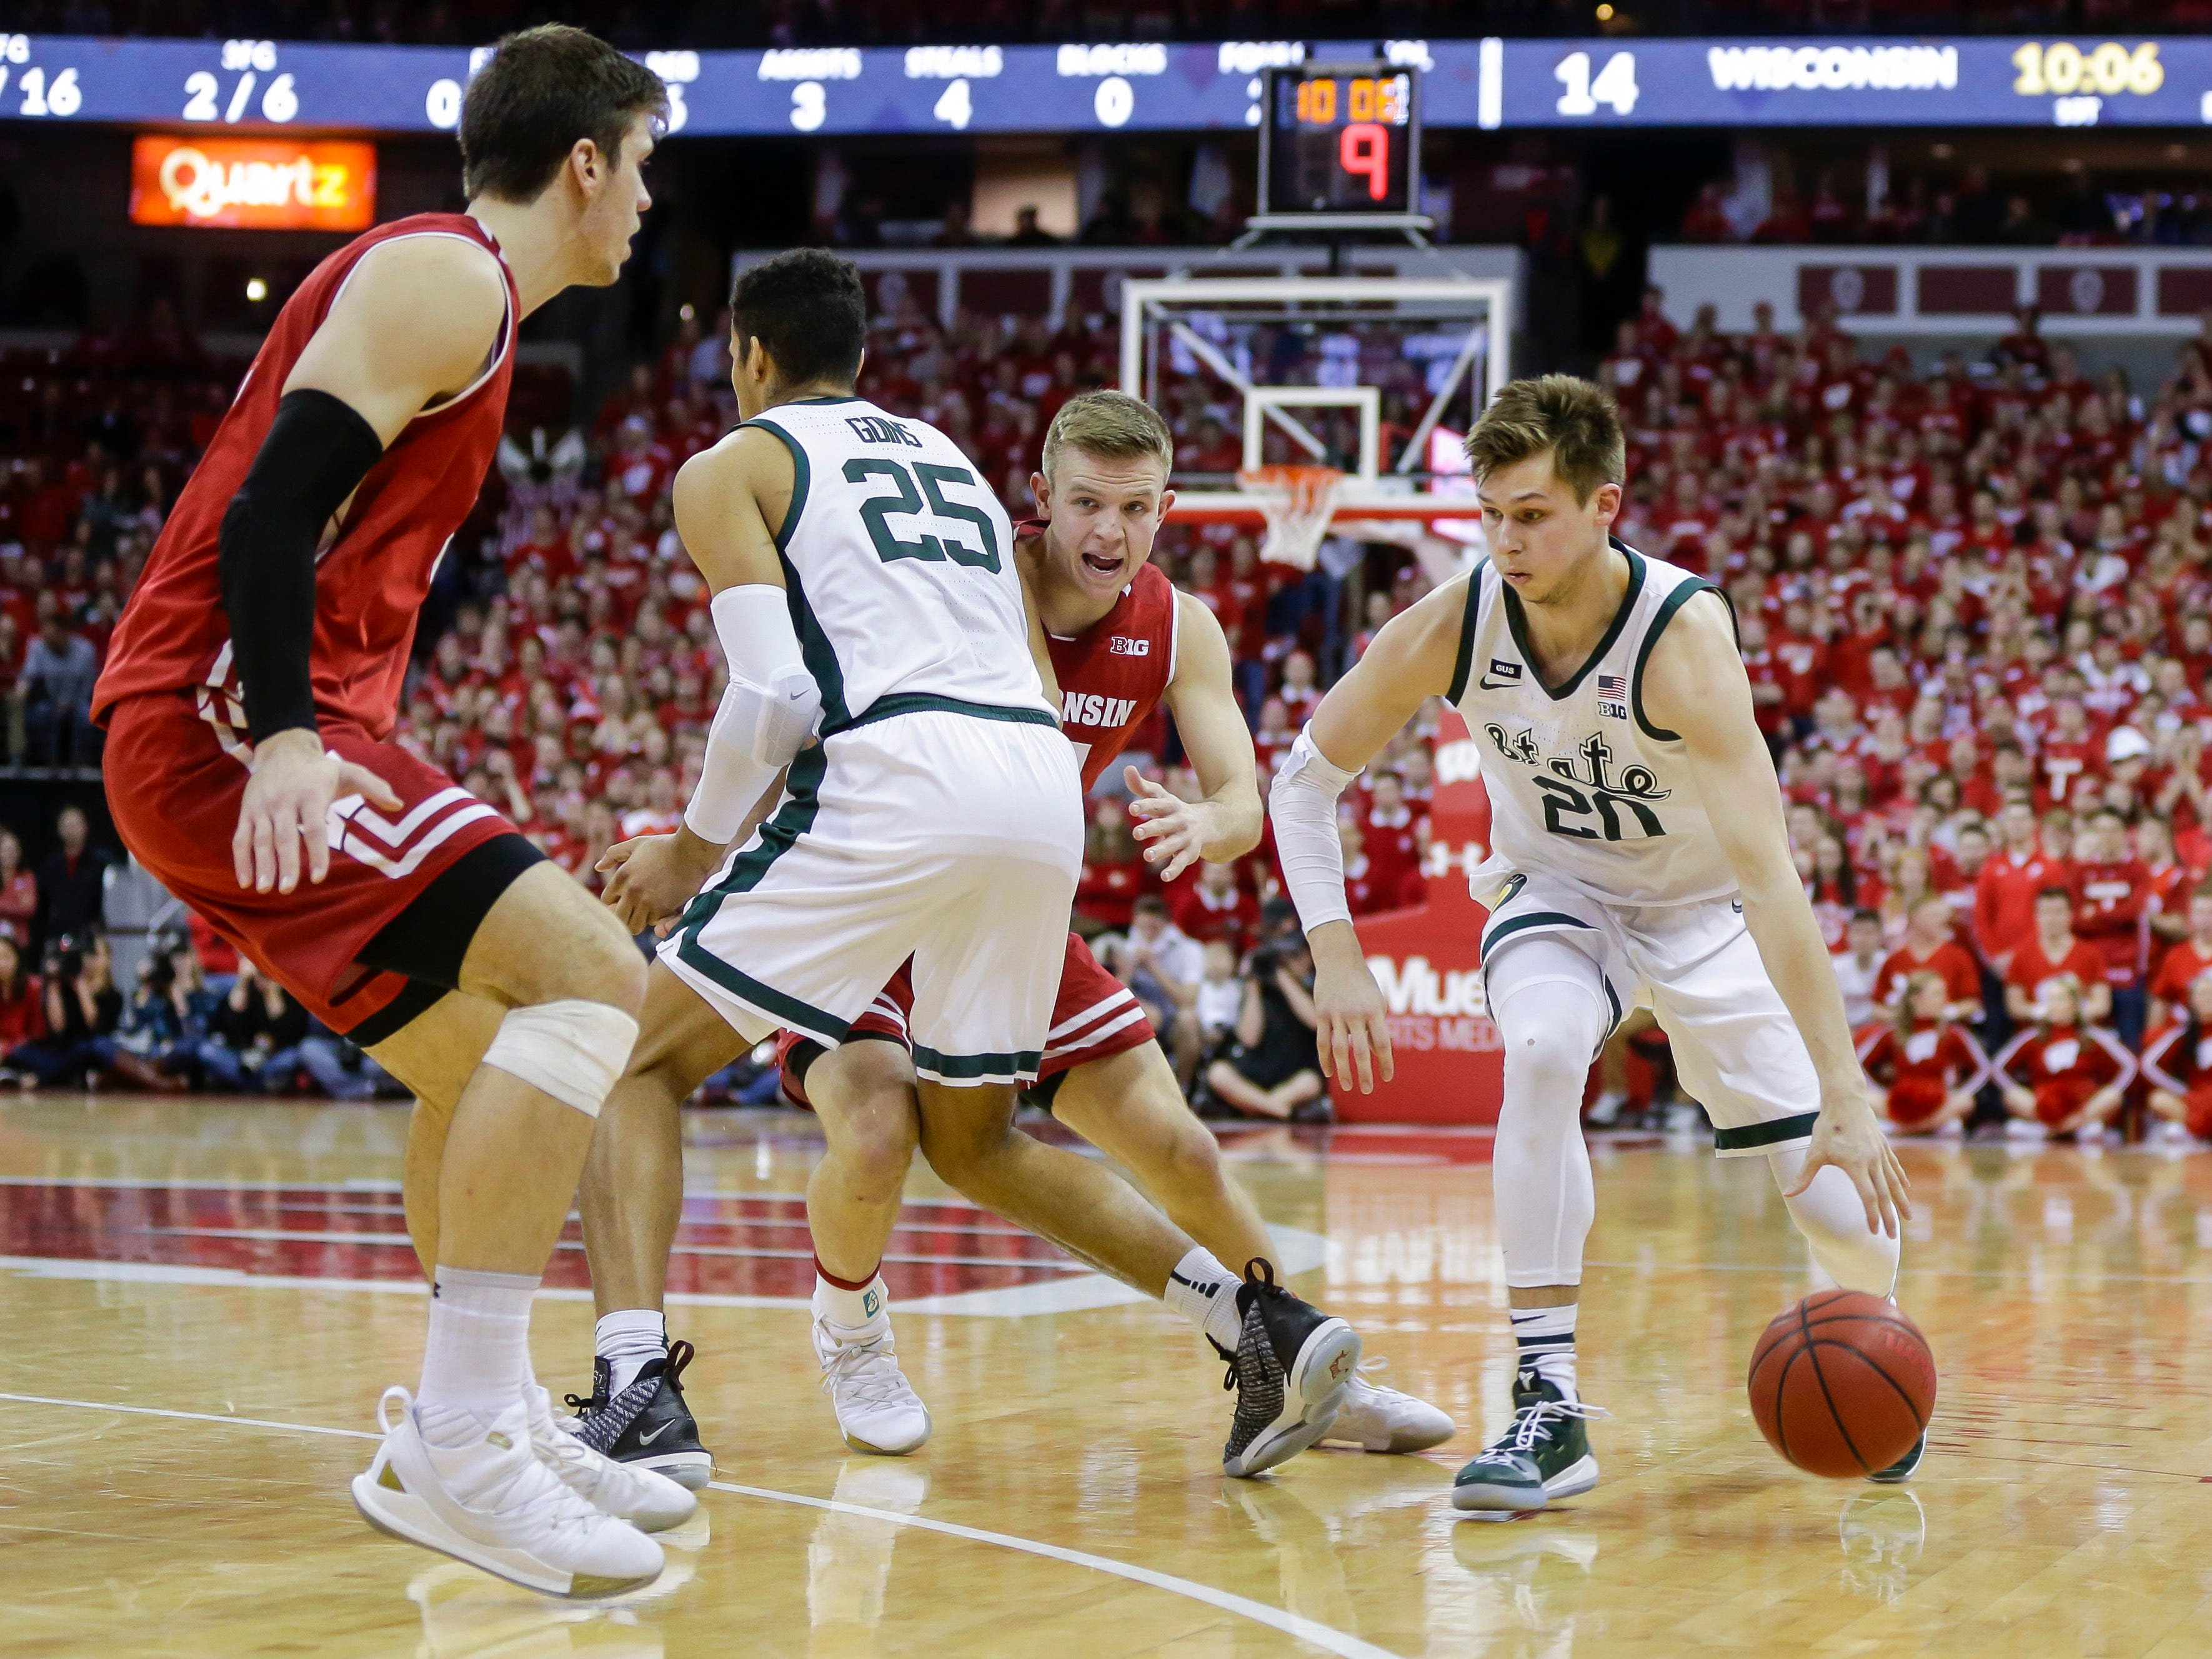 Michigan States's Matt McQuaid (20) drives against Wisconsin's Ethan Happ, left, and Brad Davison during the first half of an NCAA college basketball game Tuesday, Feb. 12, 2019, in Madison, Wis.